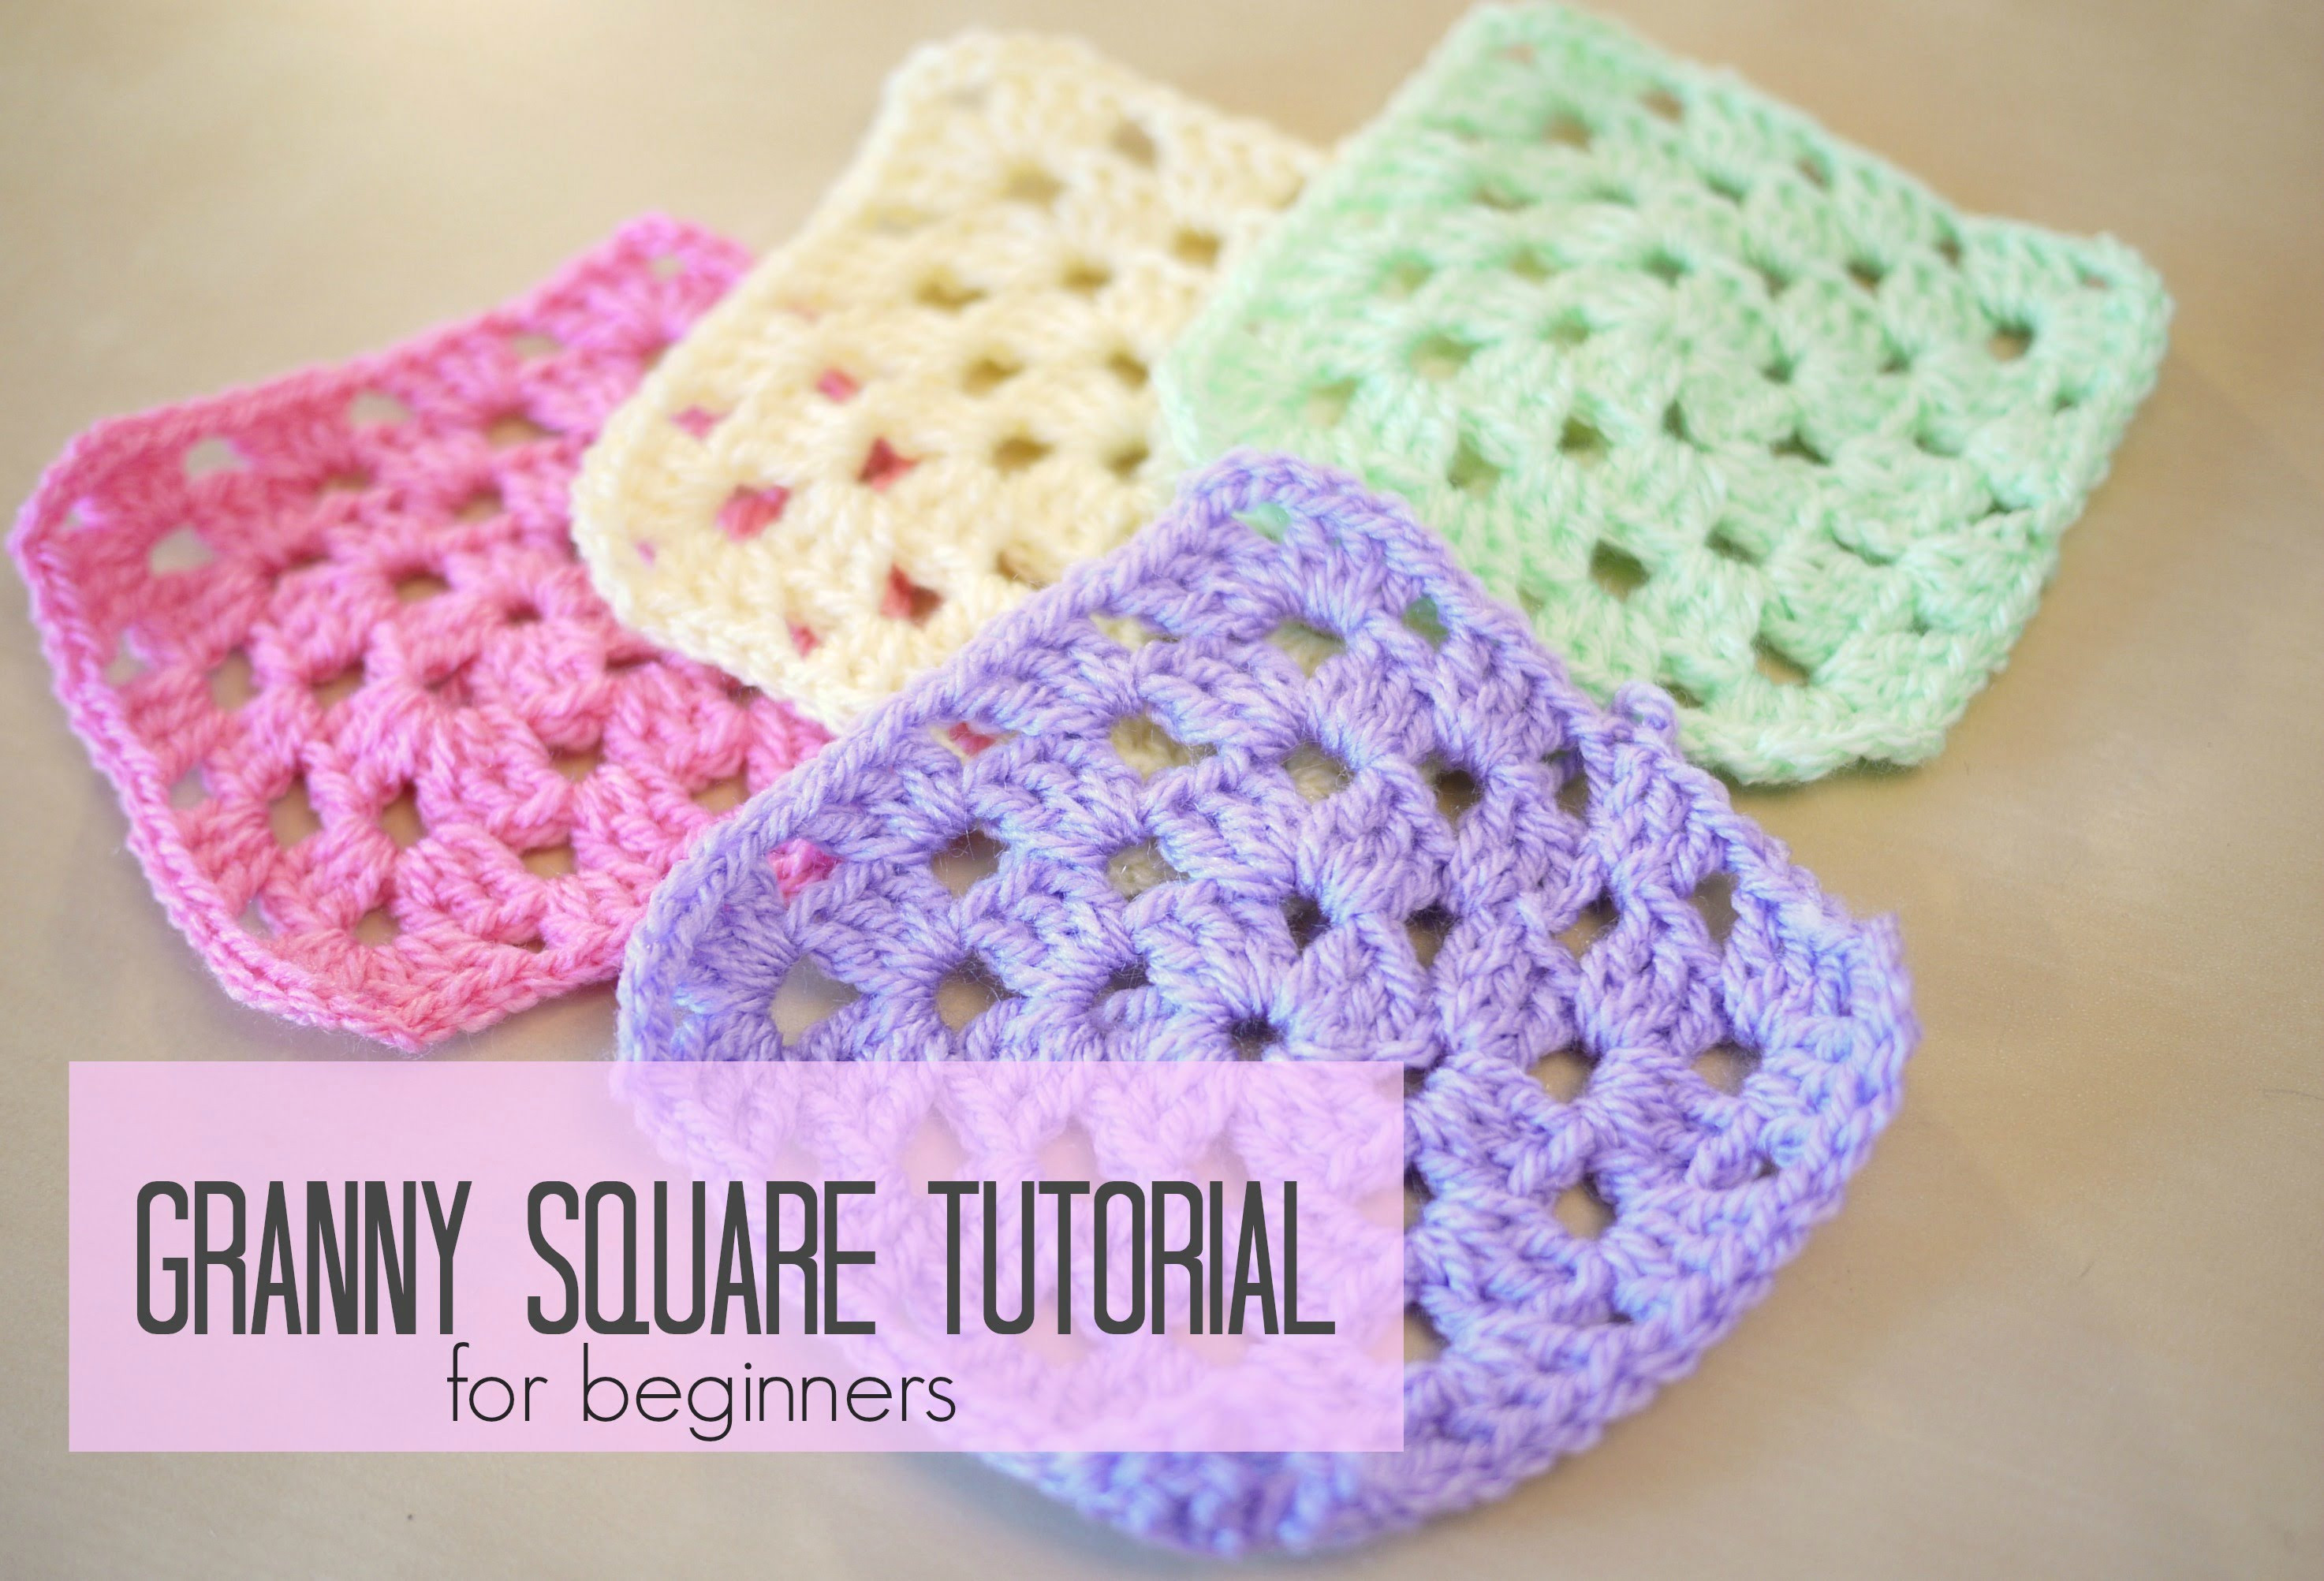 photosvideo tutorial granny square for beginners step by step